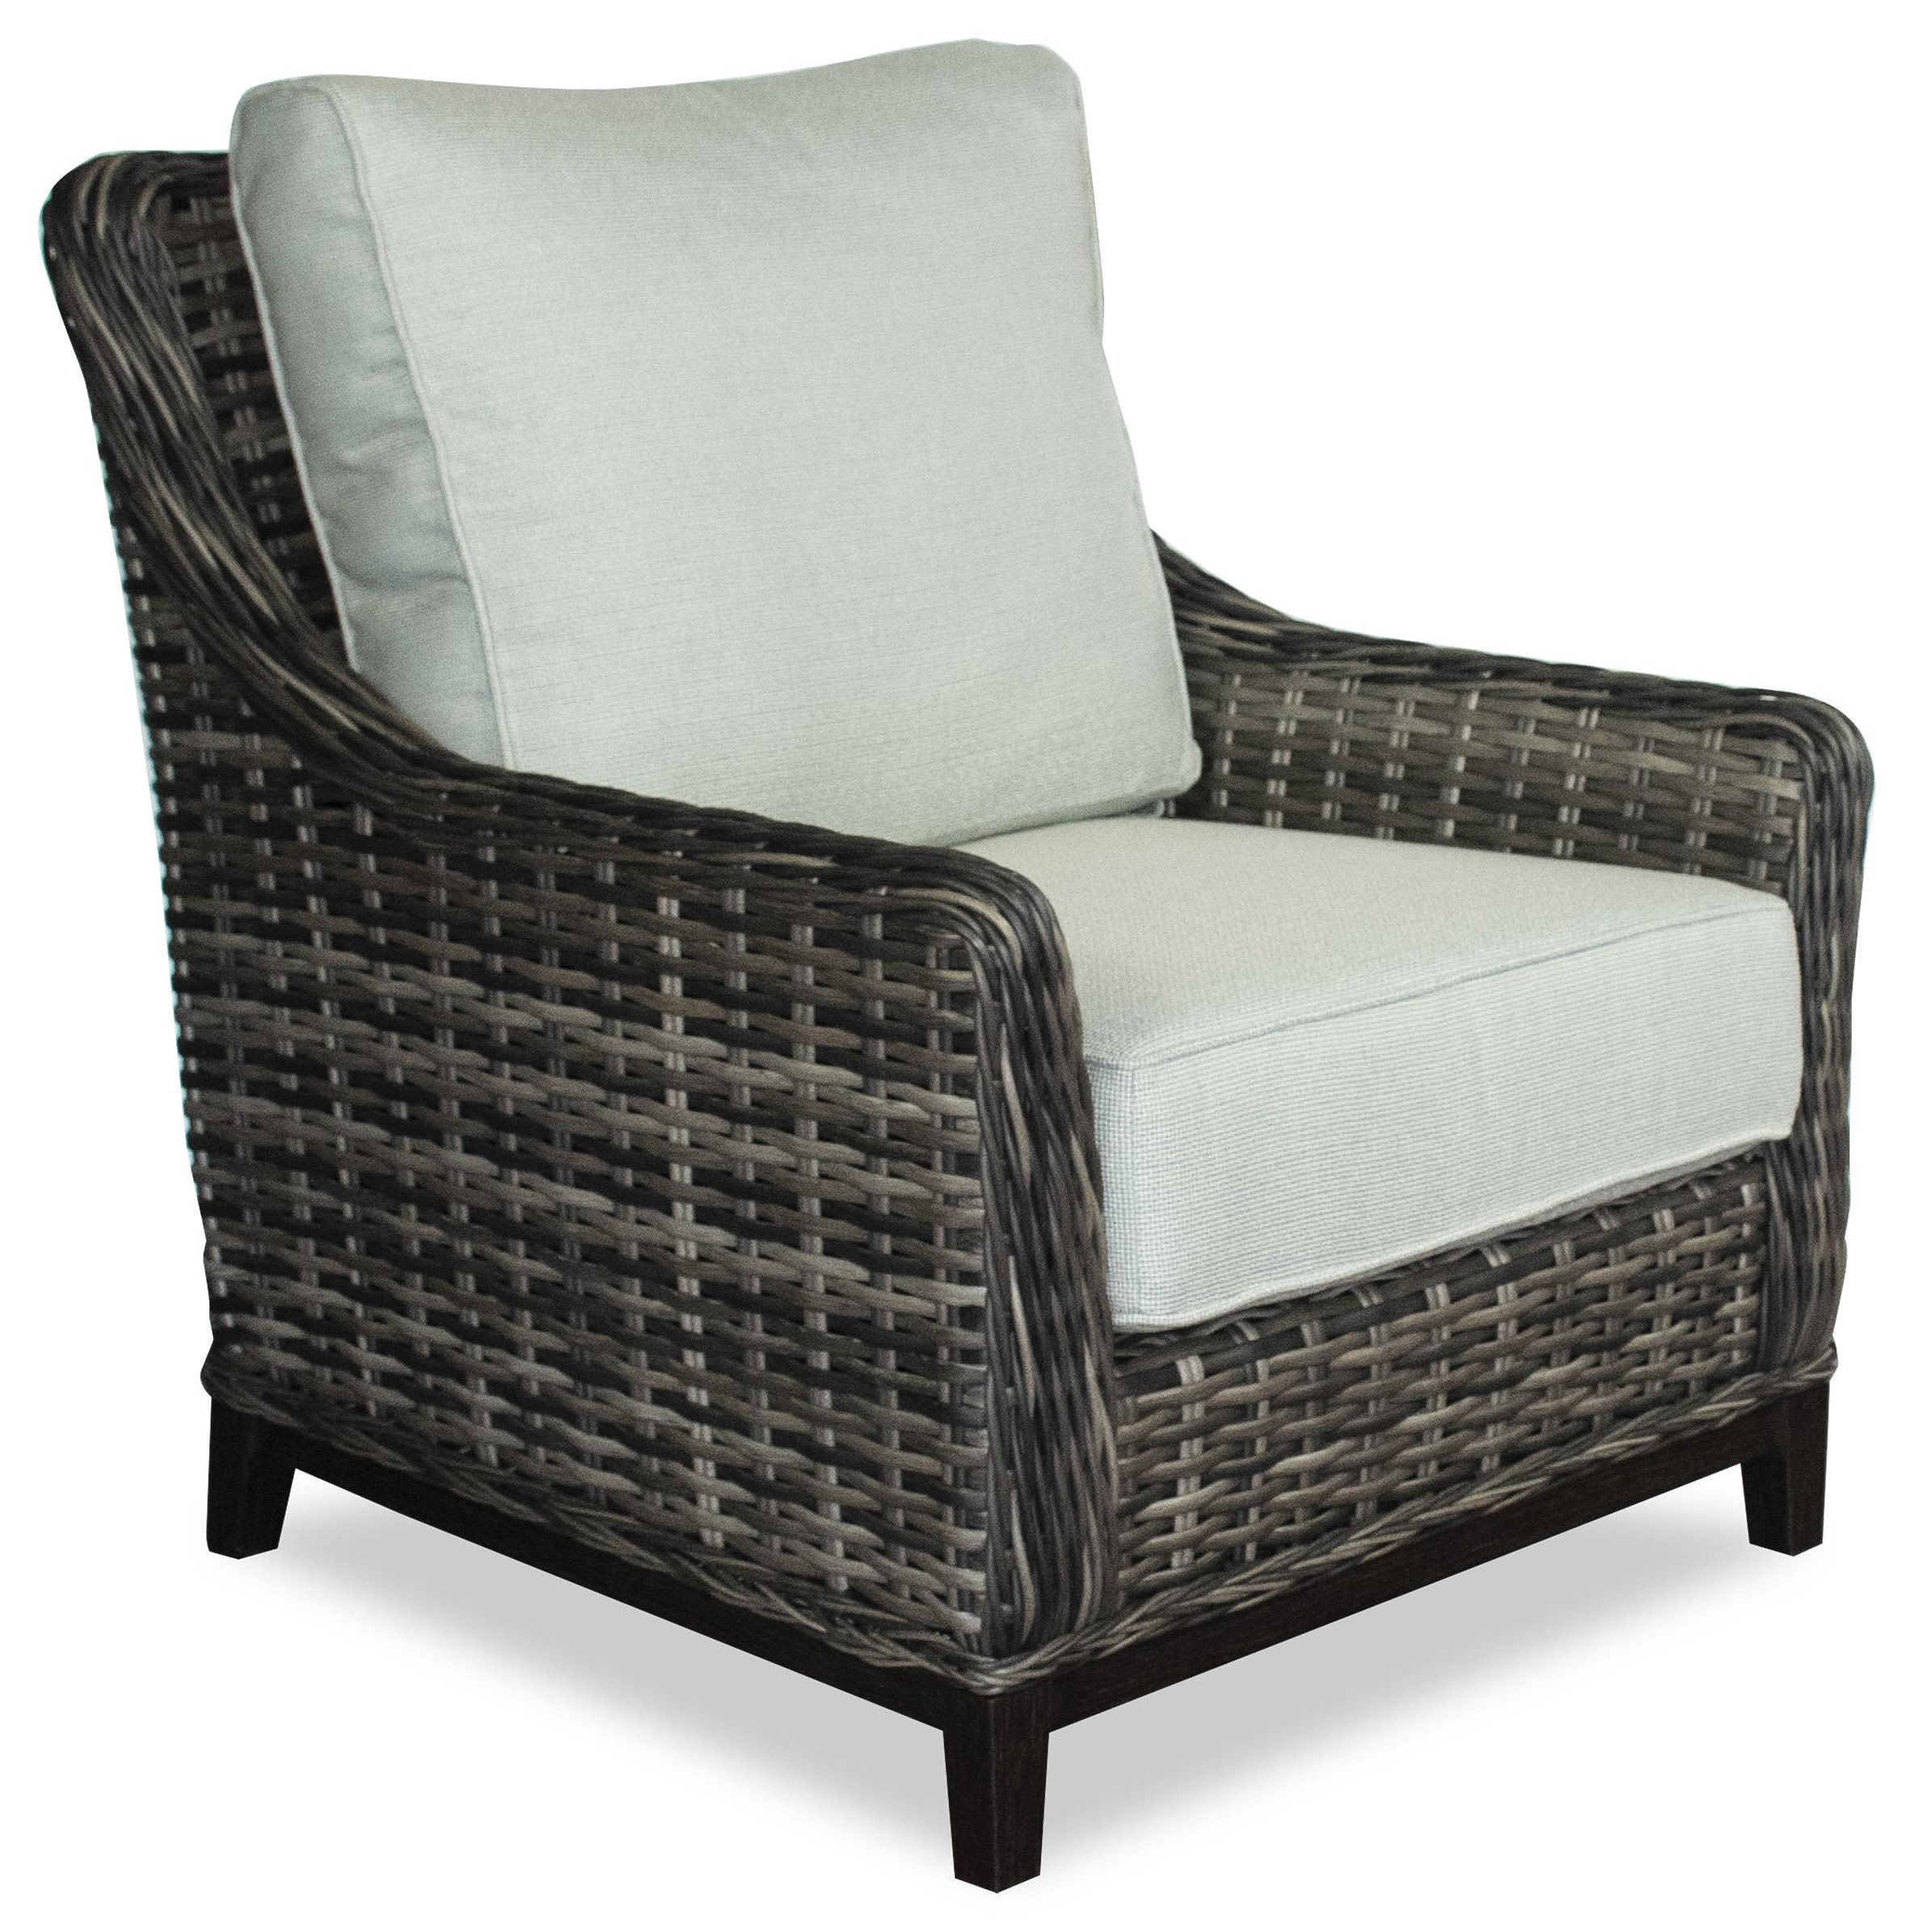 Patio Renaissance Catalina Highback Lounge Chair by Patio Renaissance at Johnny Janosik